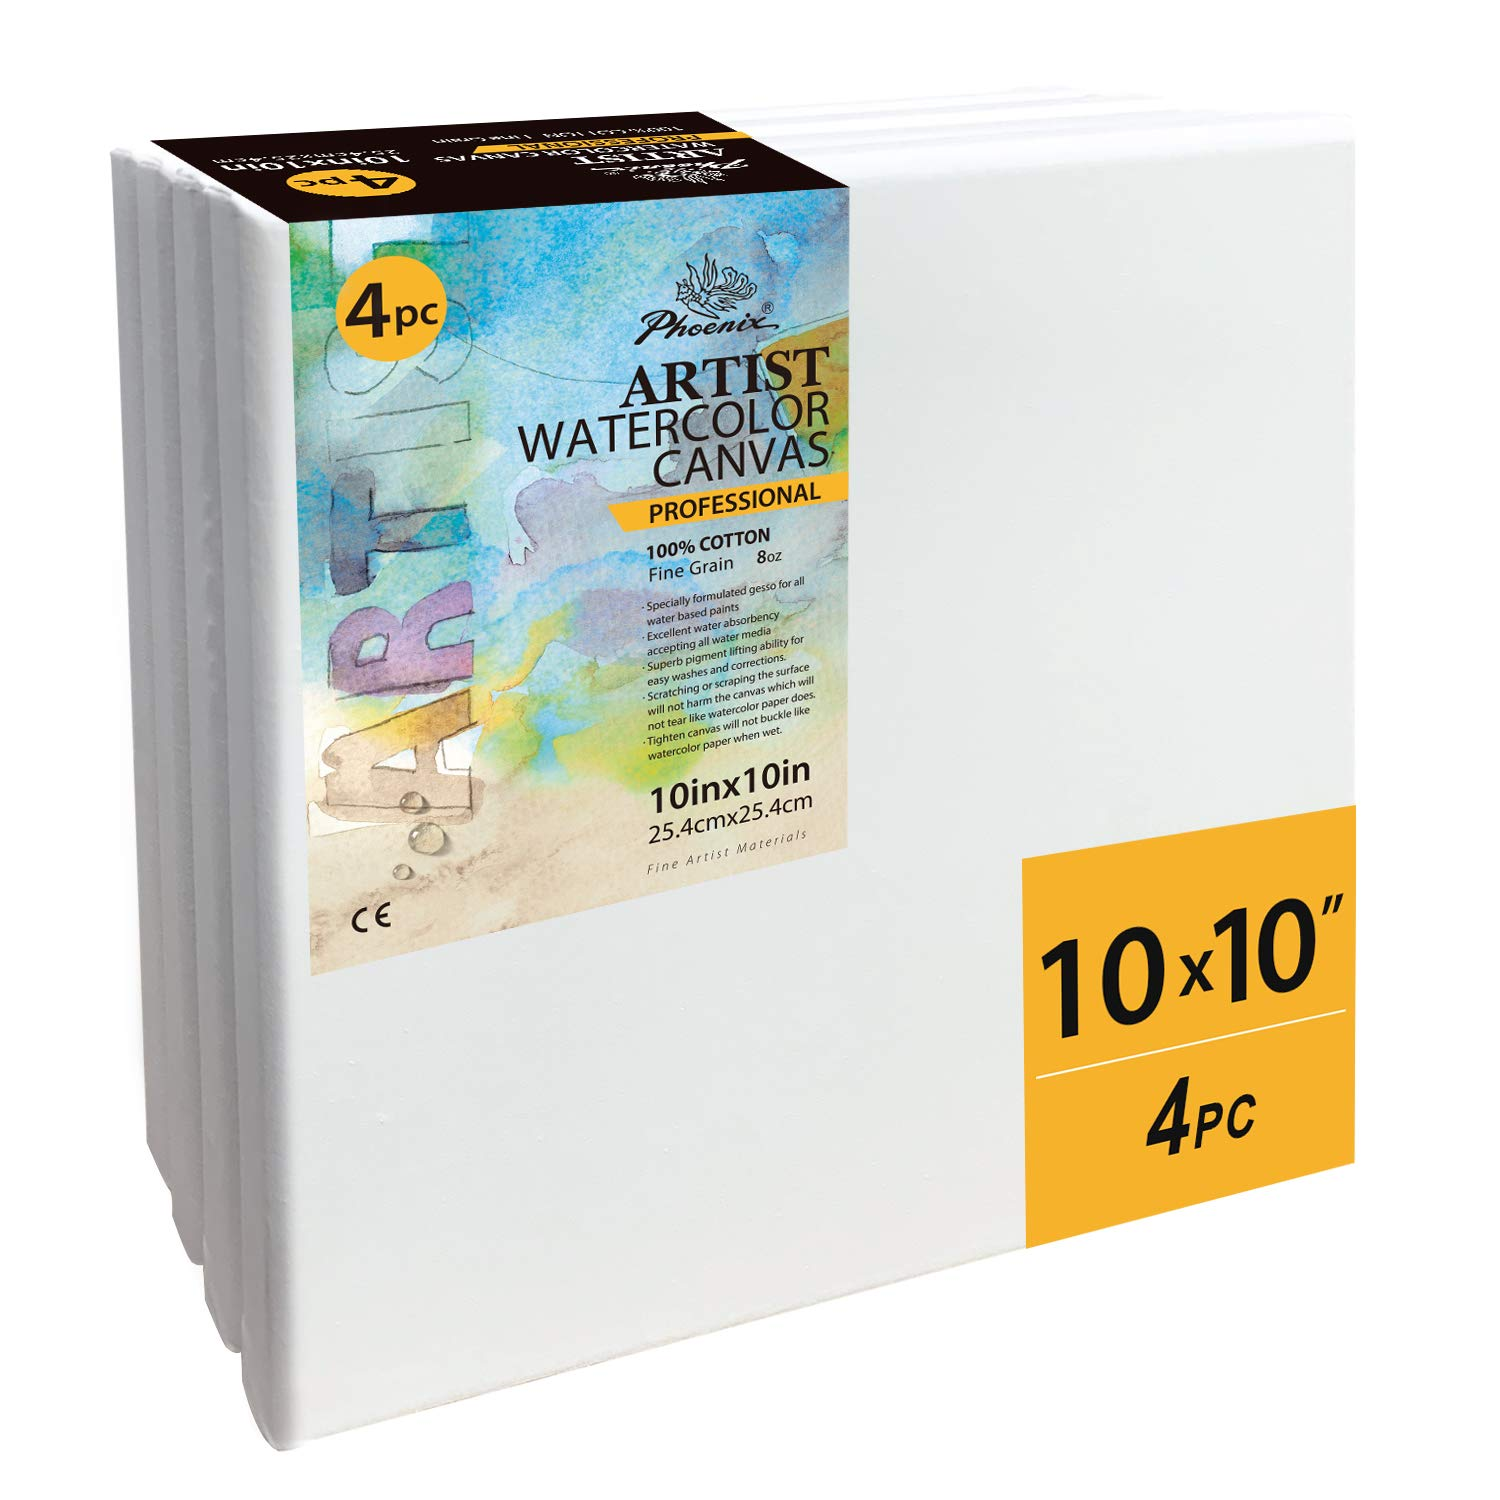 PHOENIX Stretched Watercolor Canvas - 10x10 Inch/4 Pack - 3/4 Inch Profile Professional Artist Painting Canvas for Water Soluble Paints